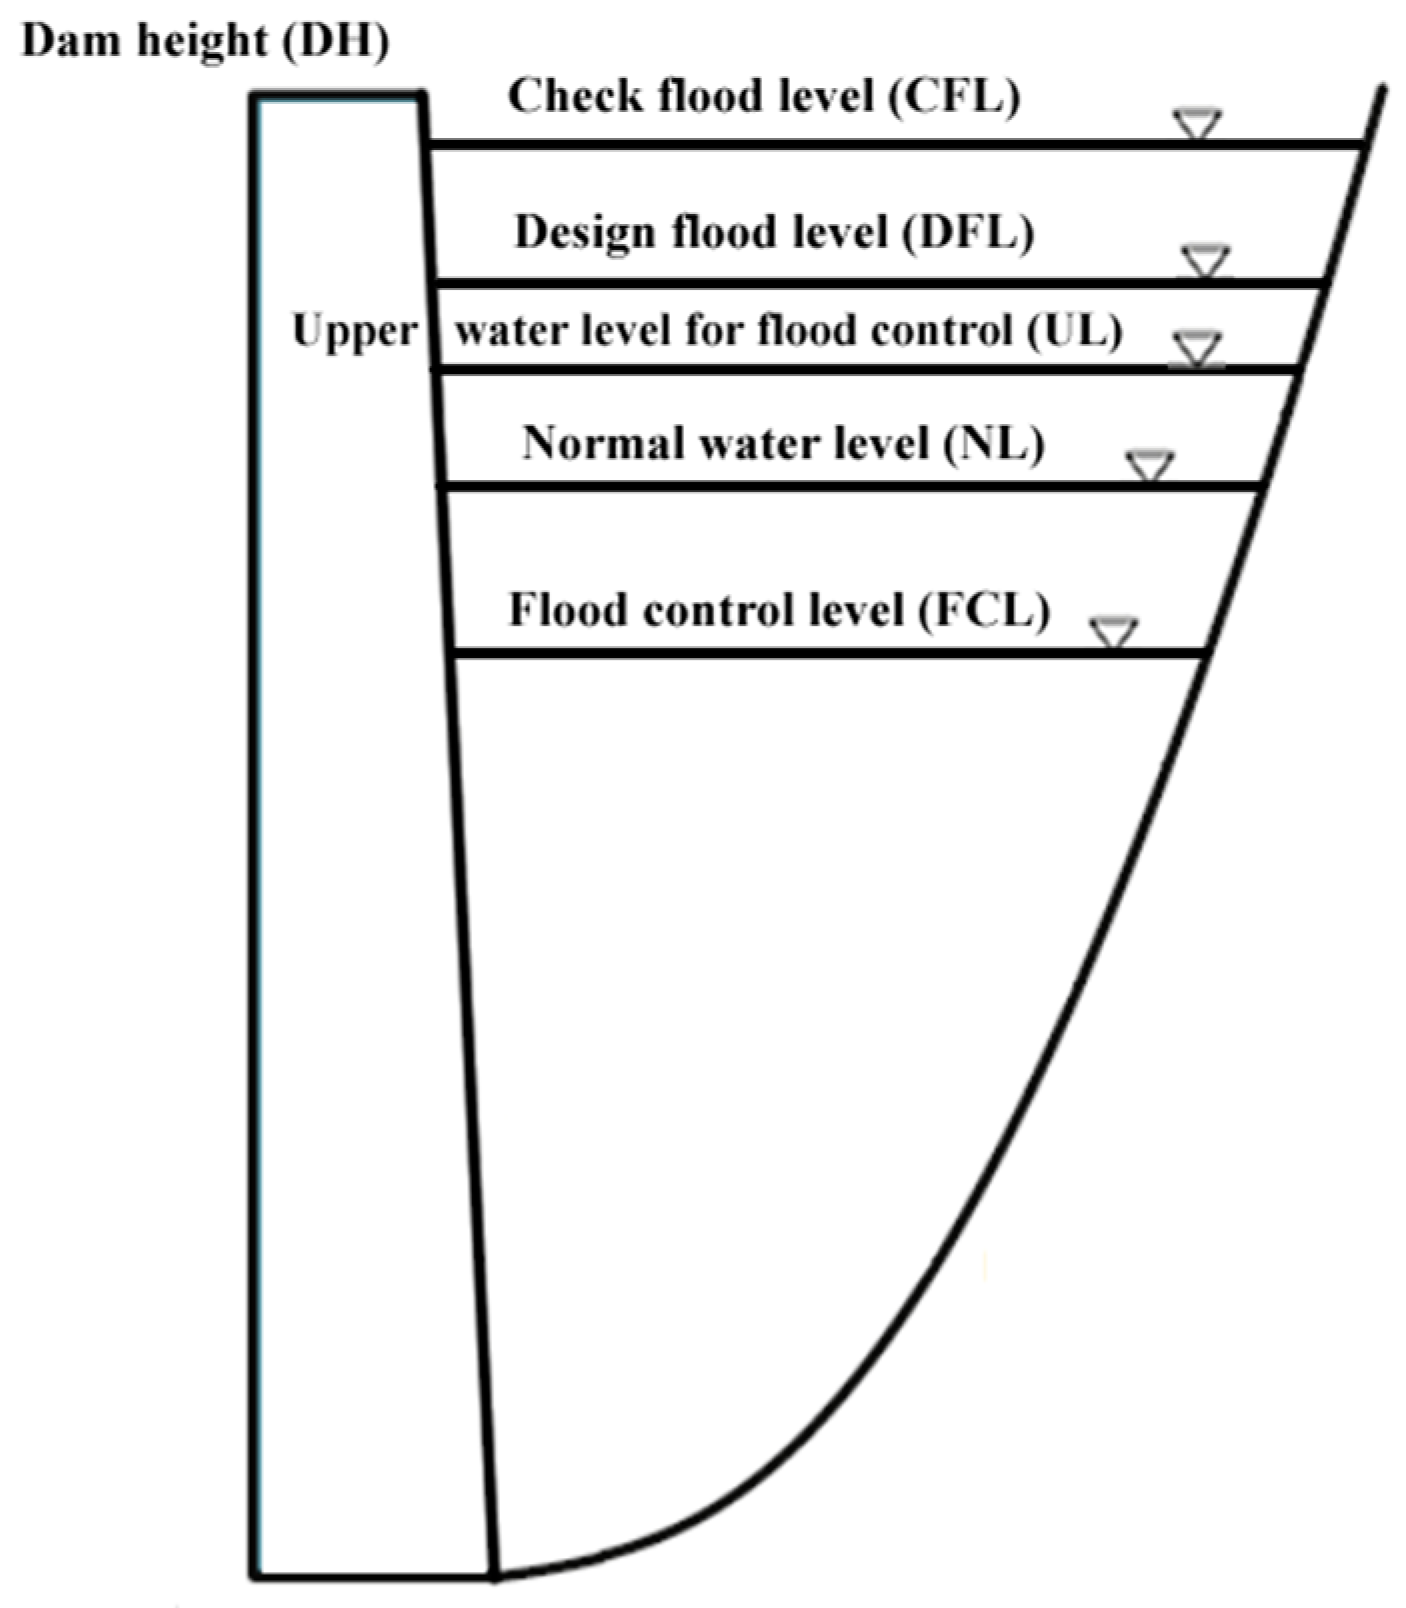 Water Free Full Text The Total Risk Analysis Of Large Dams Under Flood Hazards